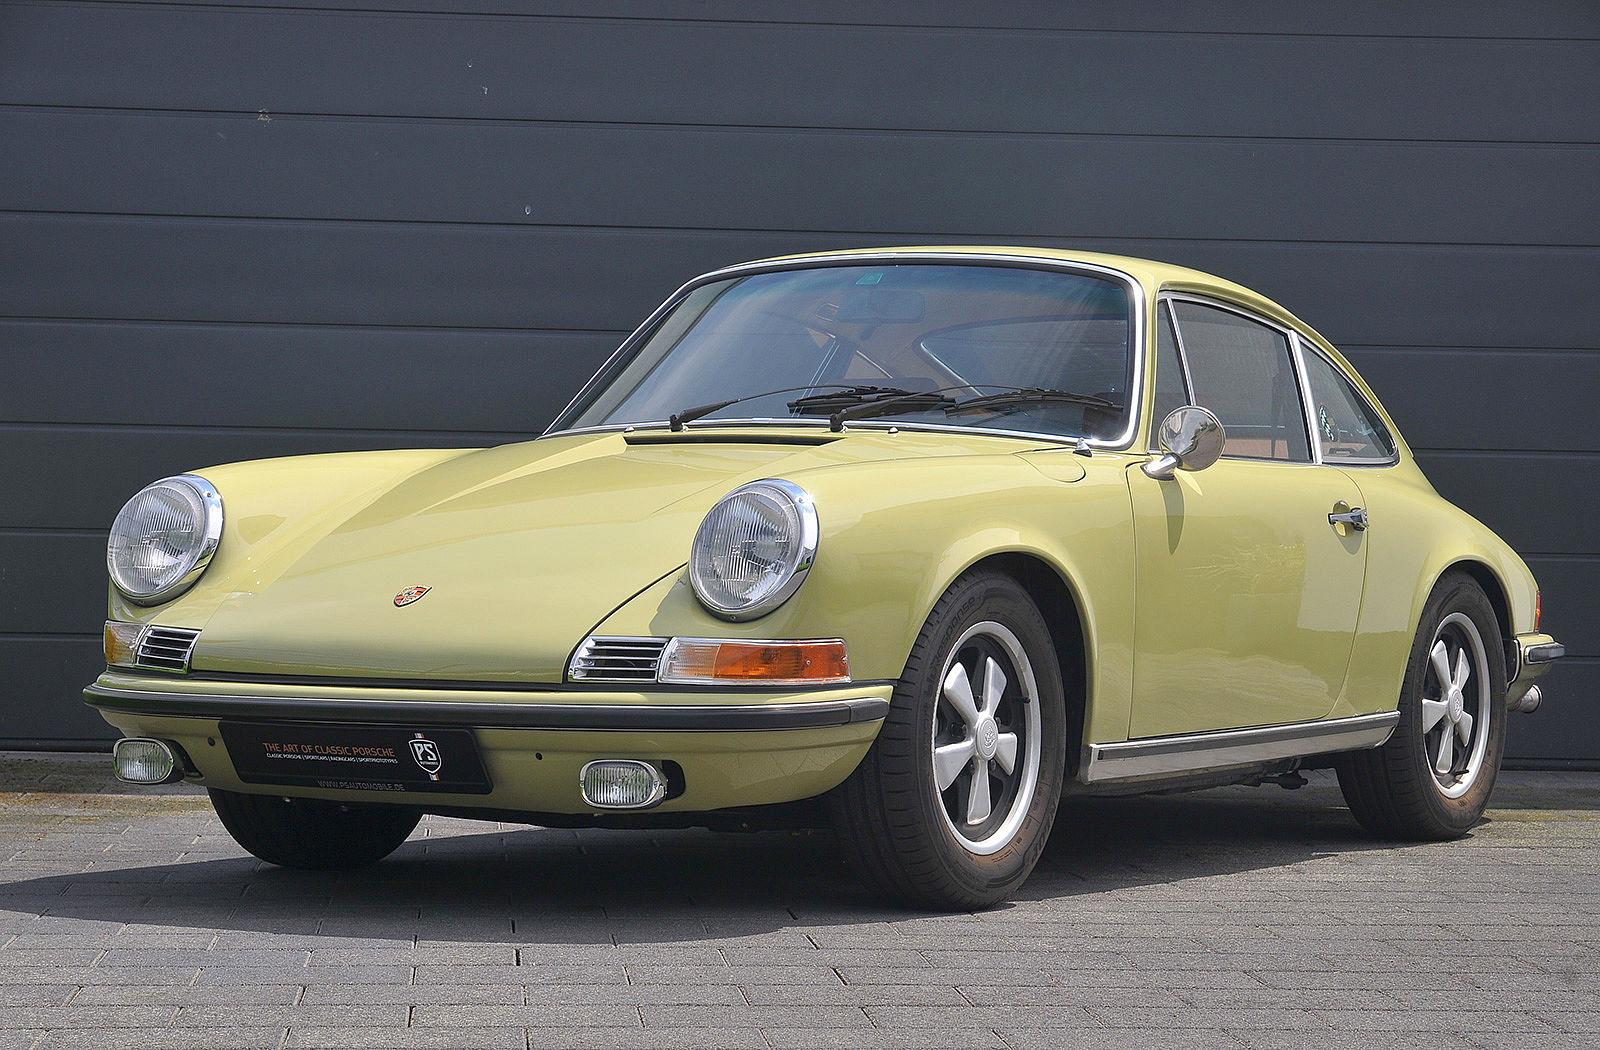 PS Automobile Porsche 911 2.0 S Coupe Gelb 08